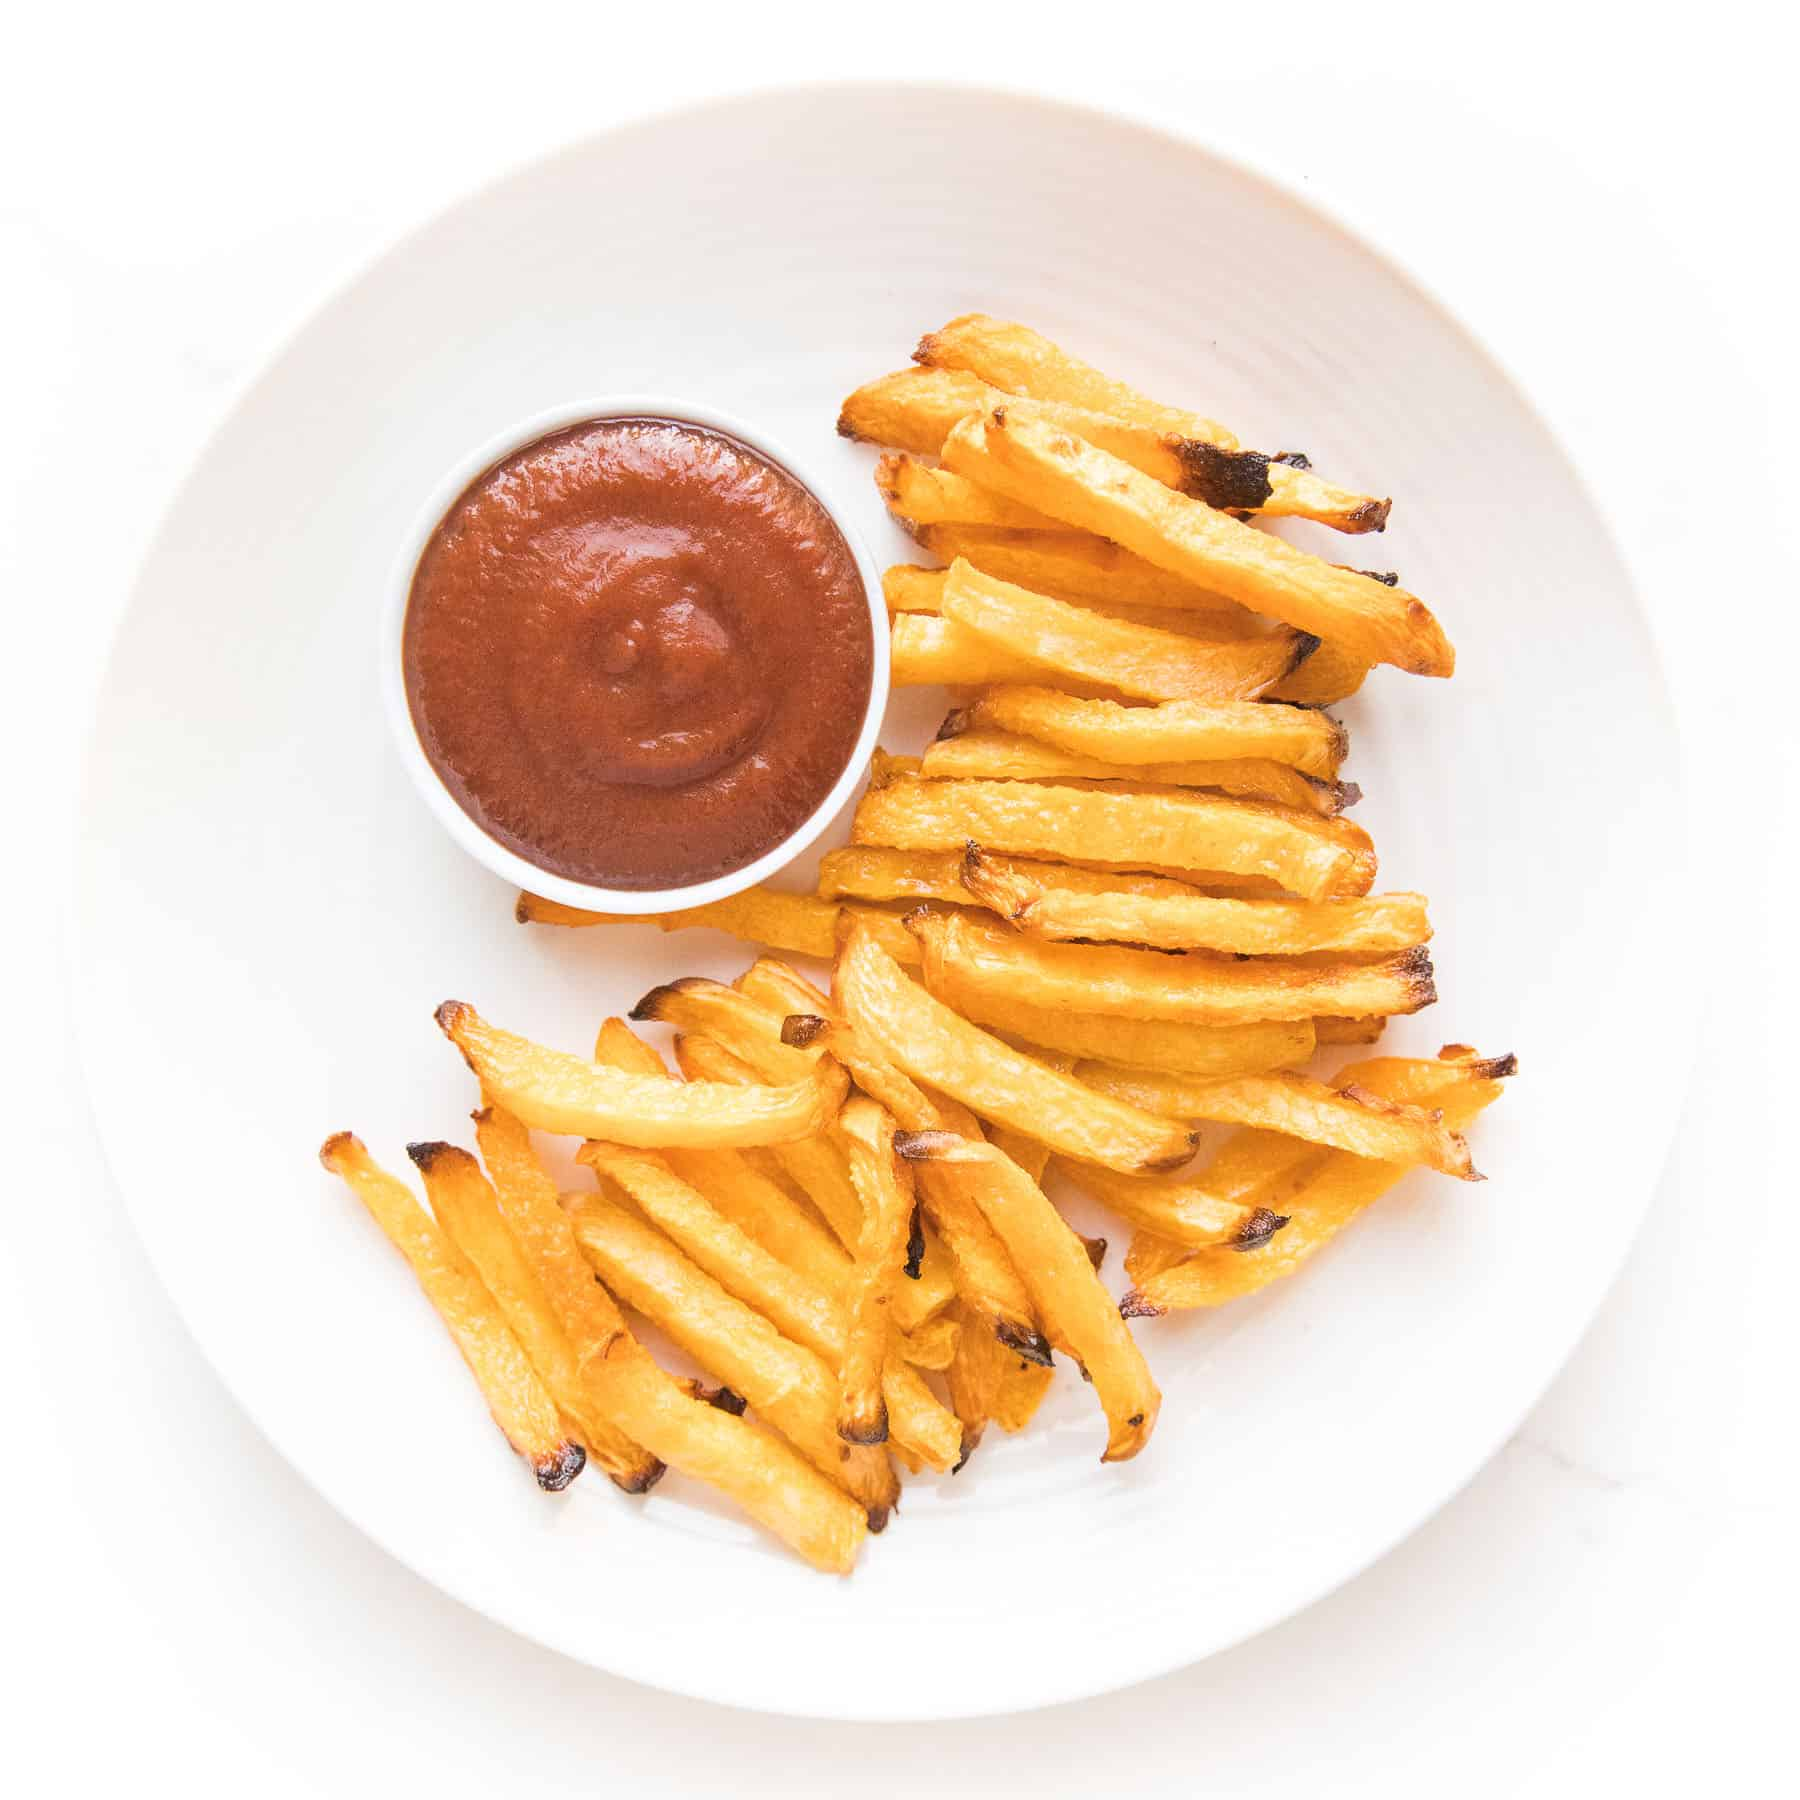 keto french fry dipped in ketchup